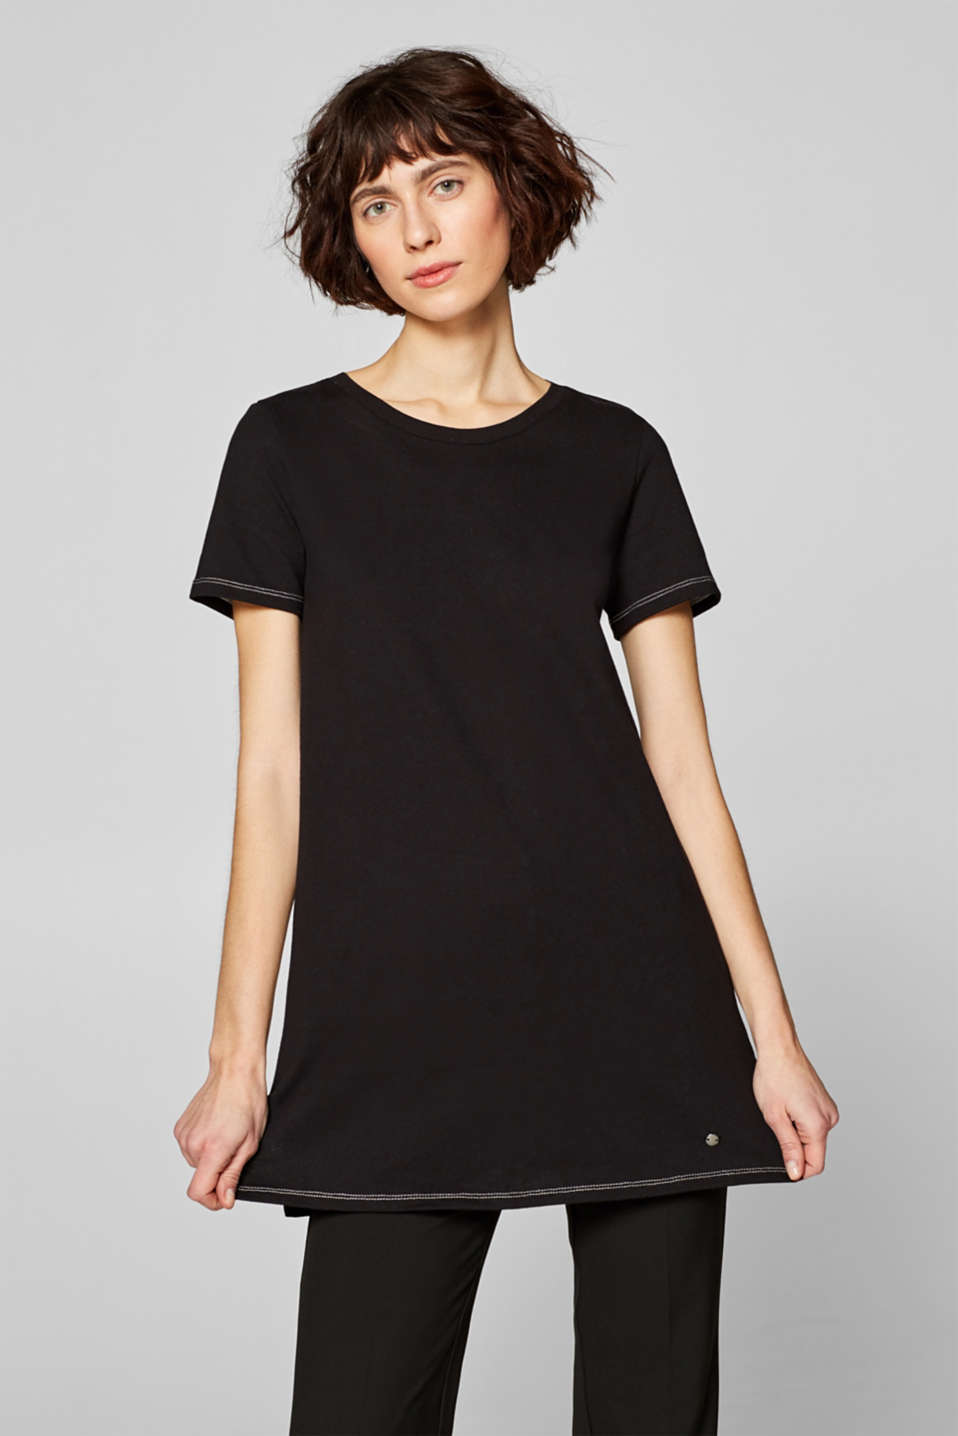 Esprit - Long top with contrasting stitching, 100% cotton